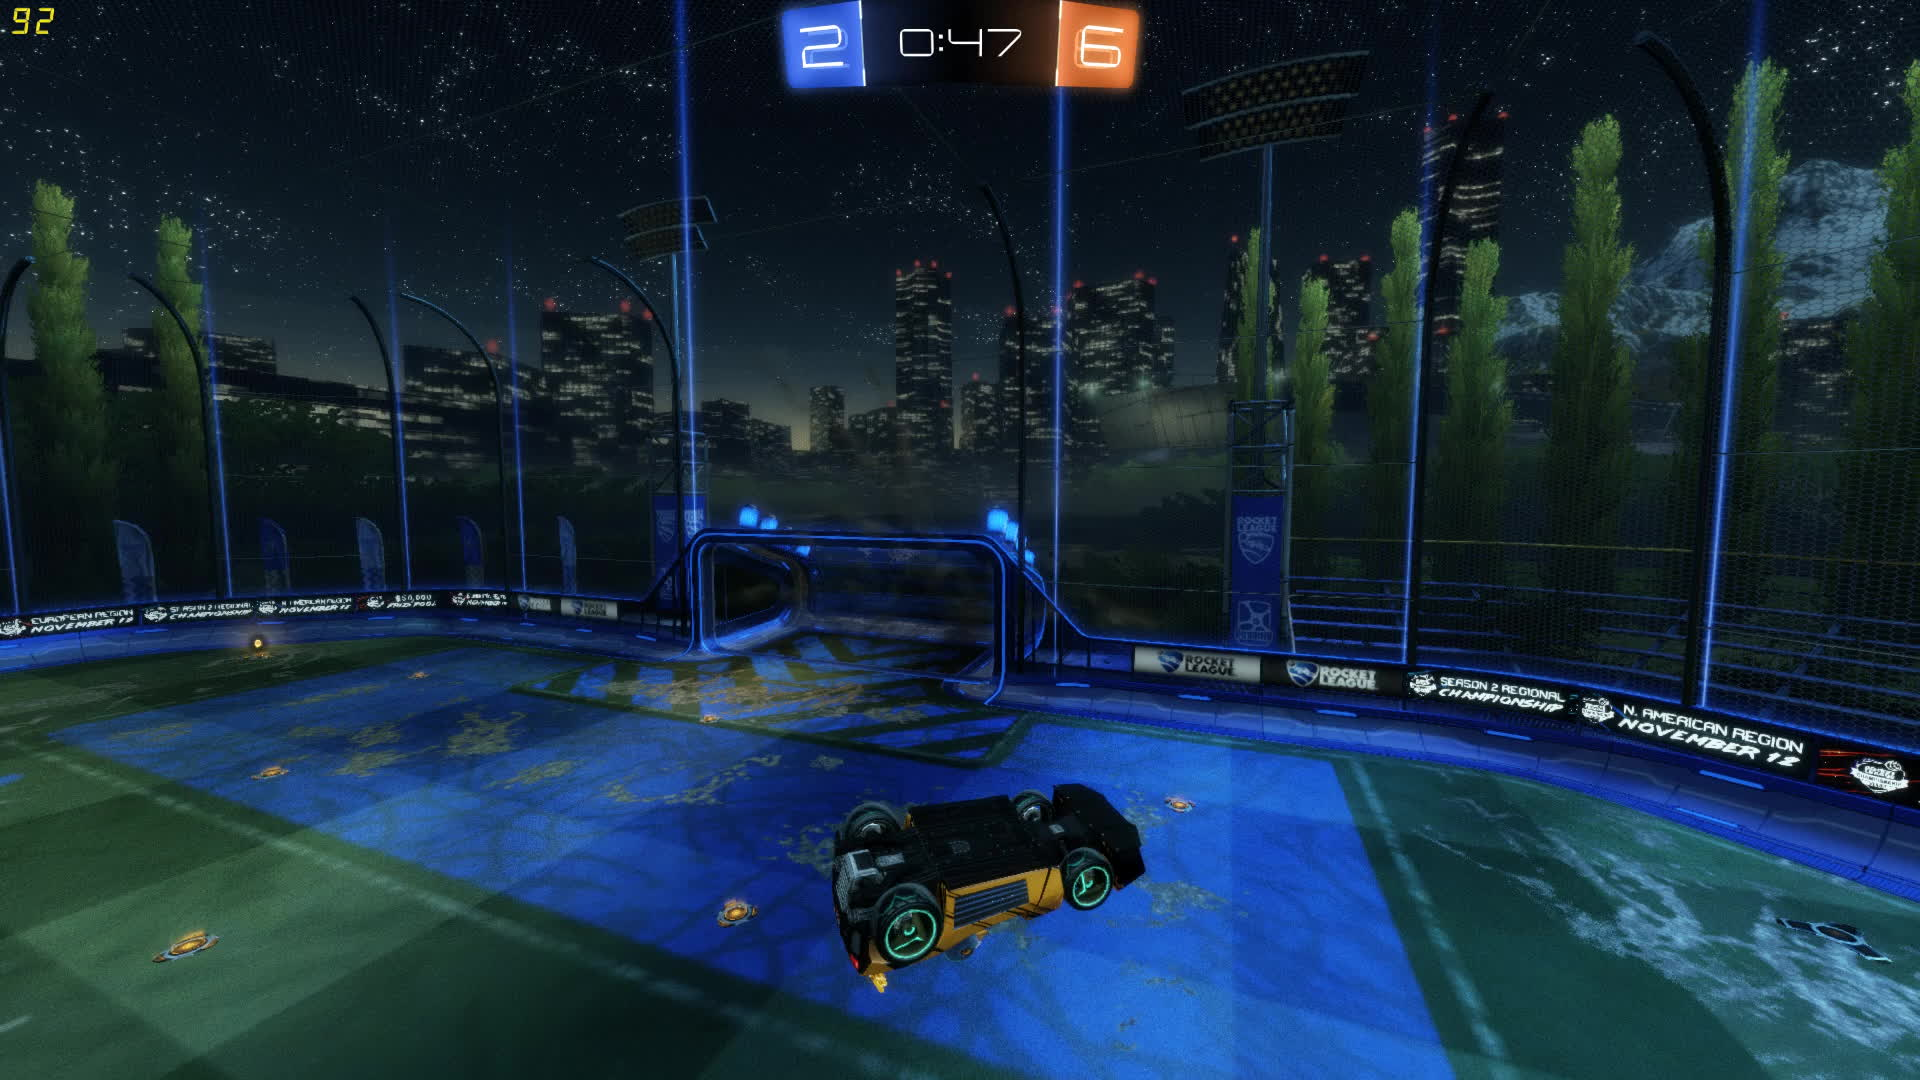 rl, rocket league, rocketleague, Rocket League GIFs